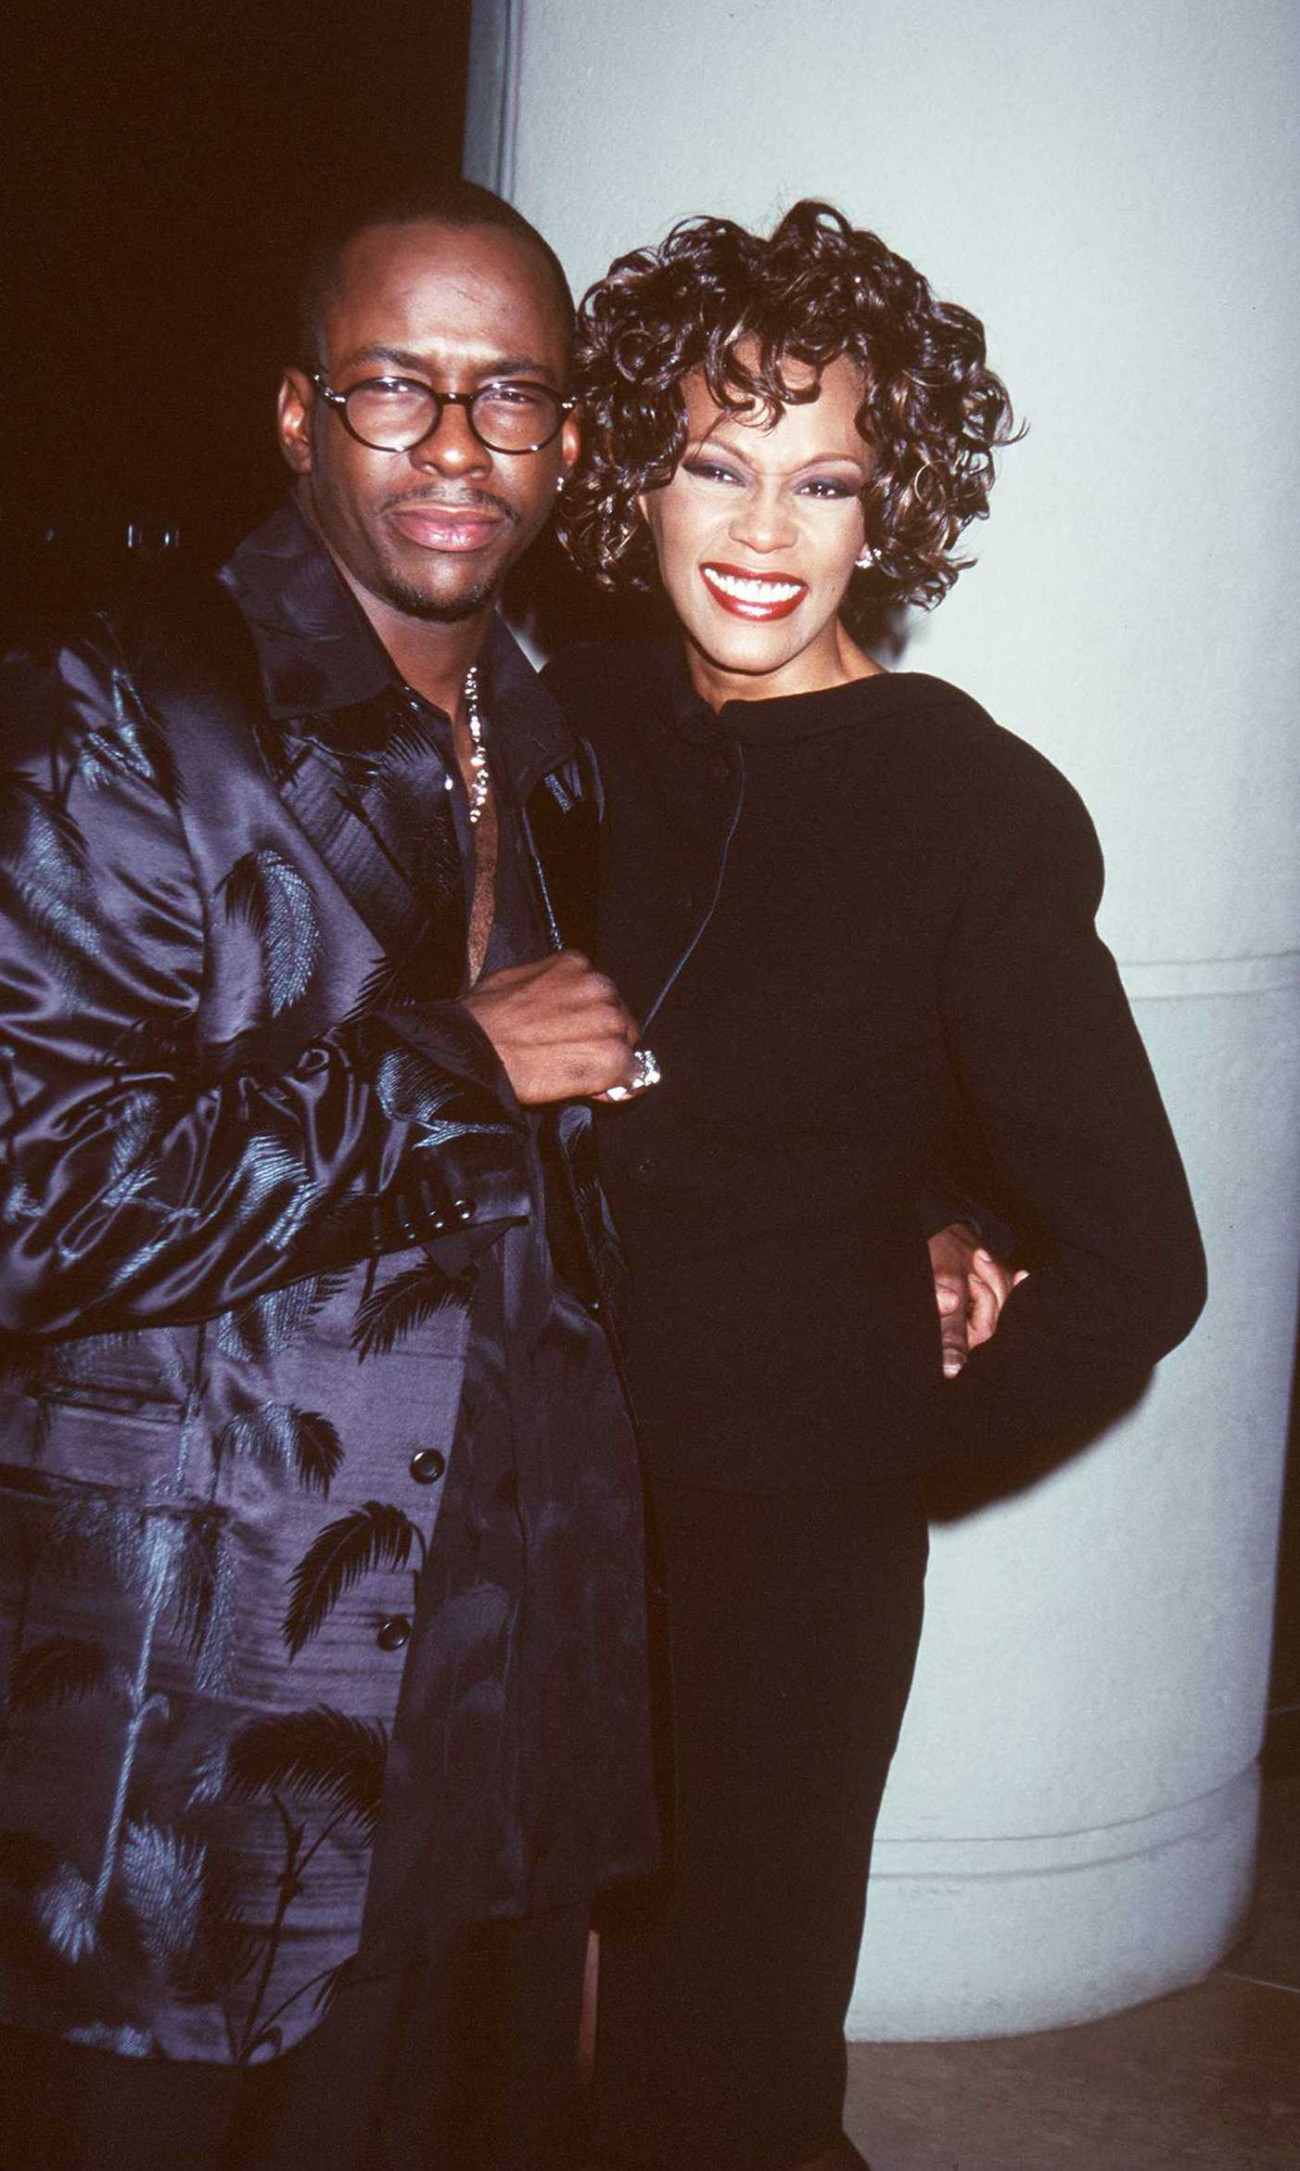 9/28/97 Beverly Hills, CA. Bobby Brown and Whitney Houston at the Third Annual International Achievement In Arts Awards.